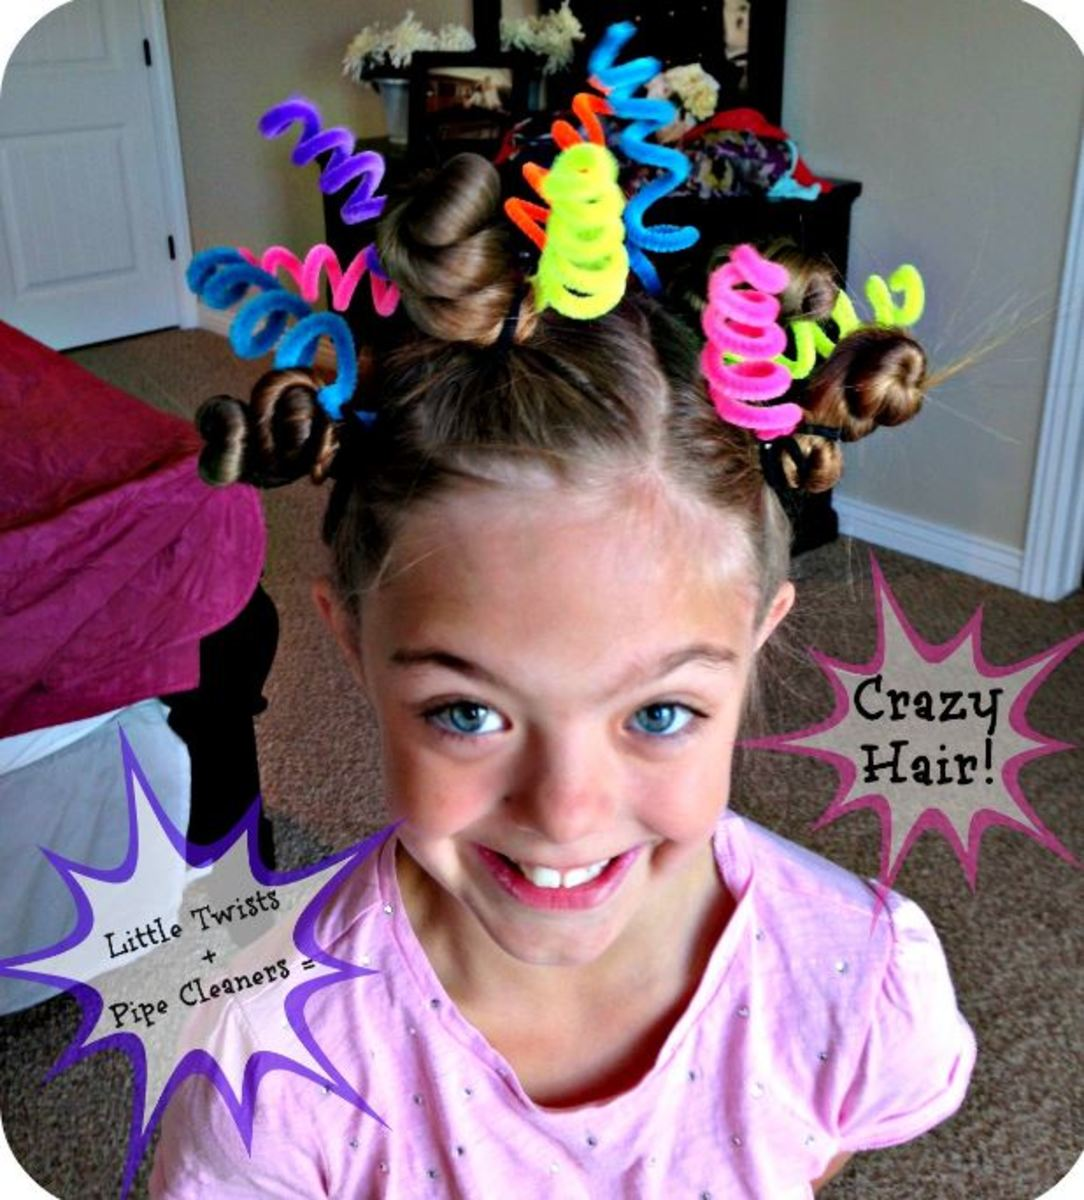 Fantastic 11 Wacky Hair Ideas For Exciting Crazy Hair Day At School Bellatory Schematic Wiring Diagrams Amerangerunnerswayorg